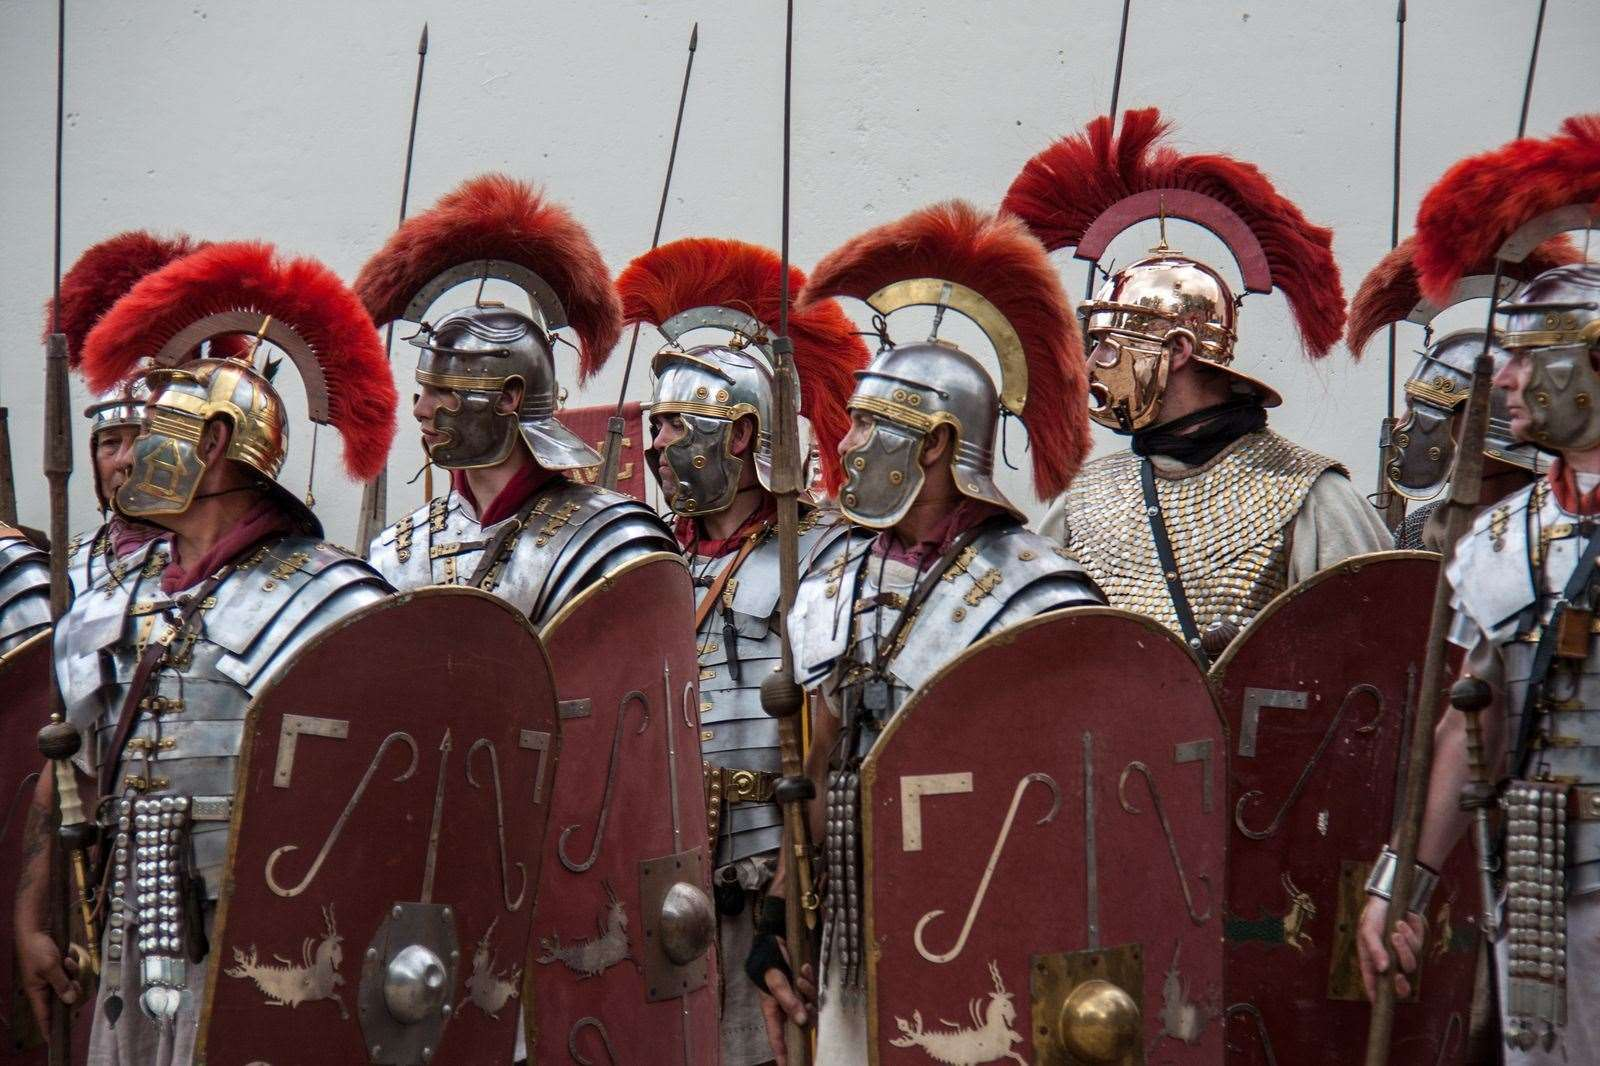 When the Romans tried to conquer Moray